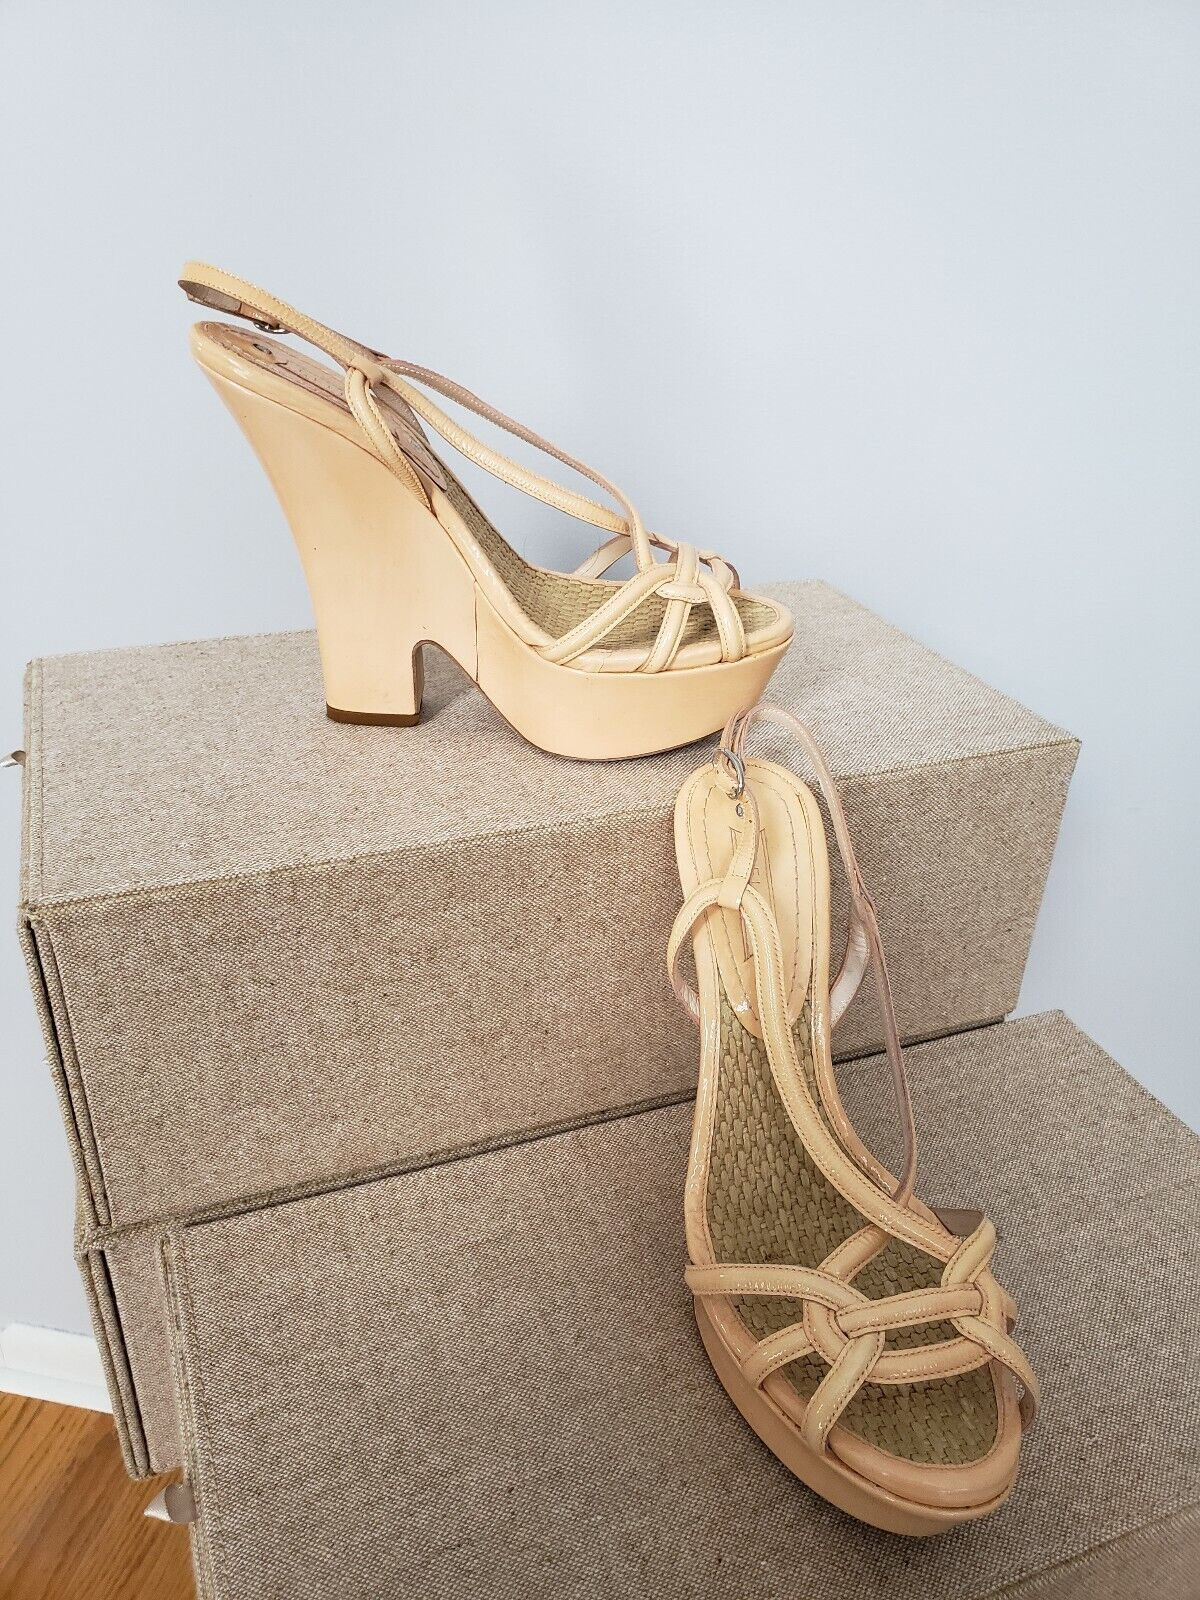 una marca di lusso Celine Leather Wedges Wedges Wedges strappy ankle wrap scarpe bo  650 Sz 38  per il commercio all'ingrosso